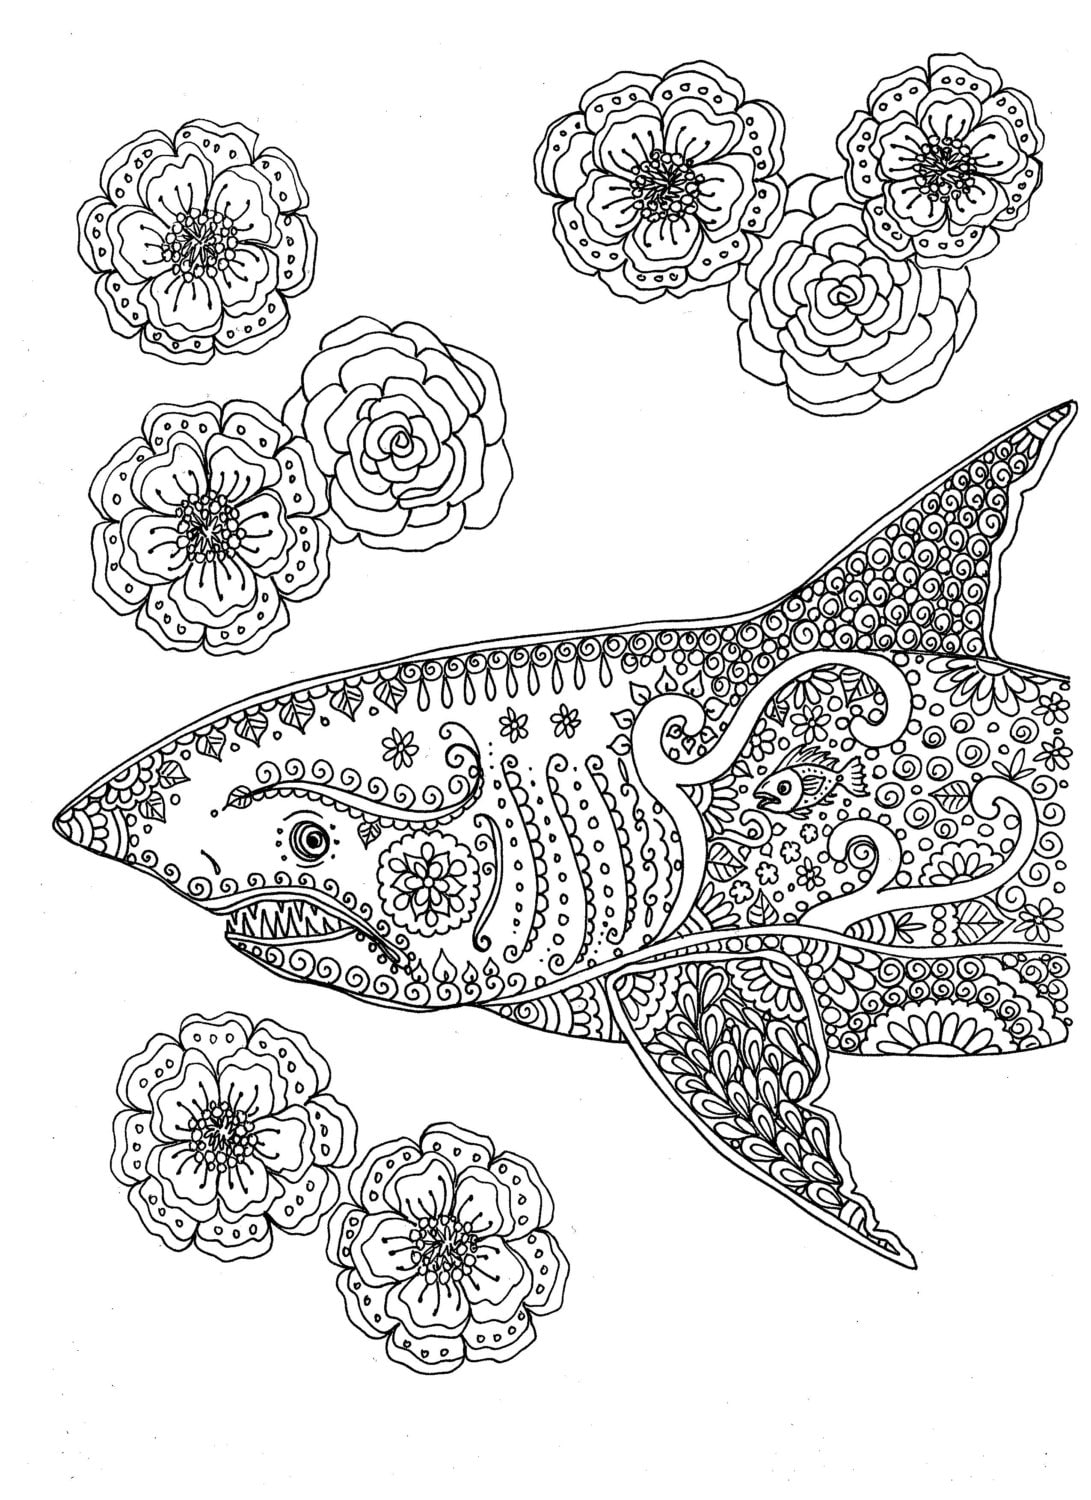 Instant Download Coloring page Shark Adult Coloring You be the